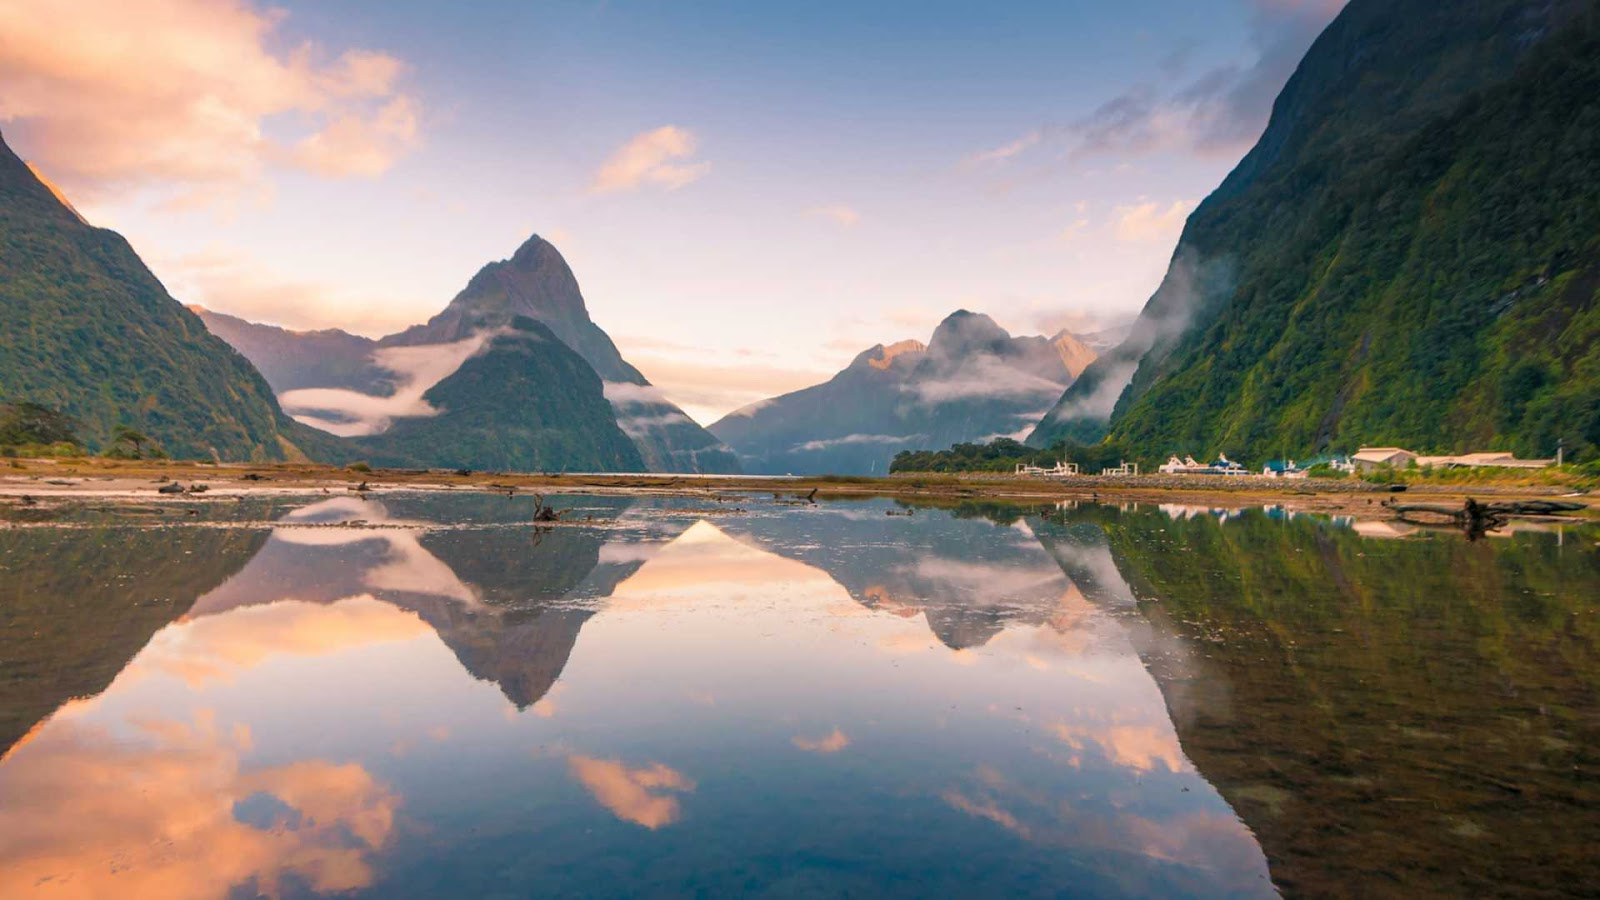 Milford Sound: Travel New Zealand and Discover the Kiwi Land